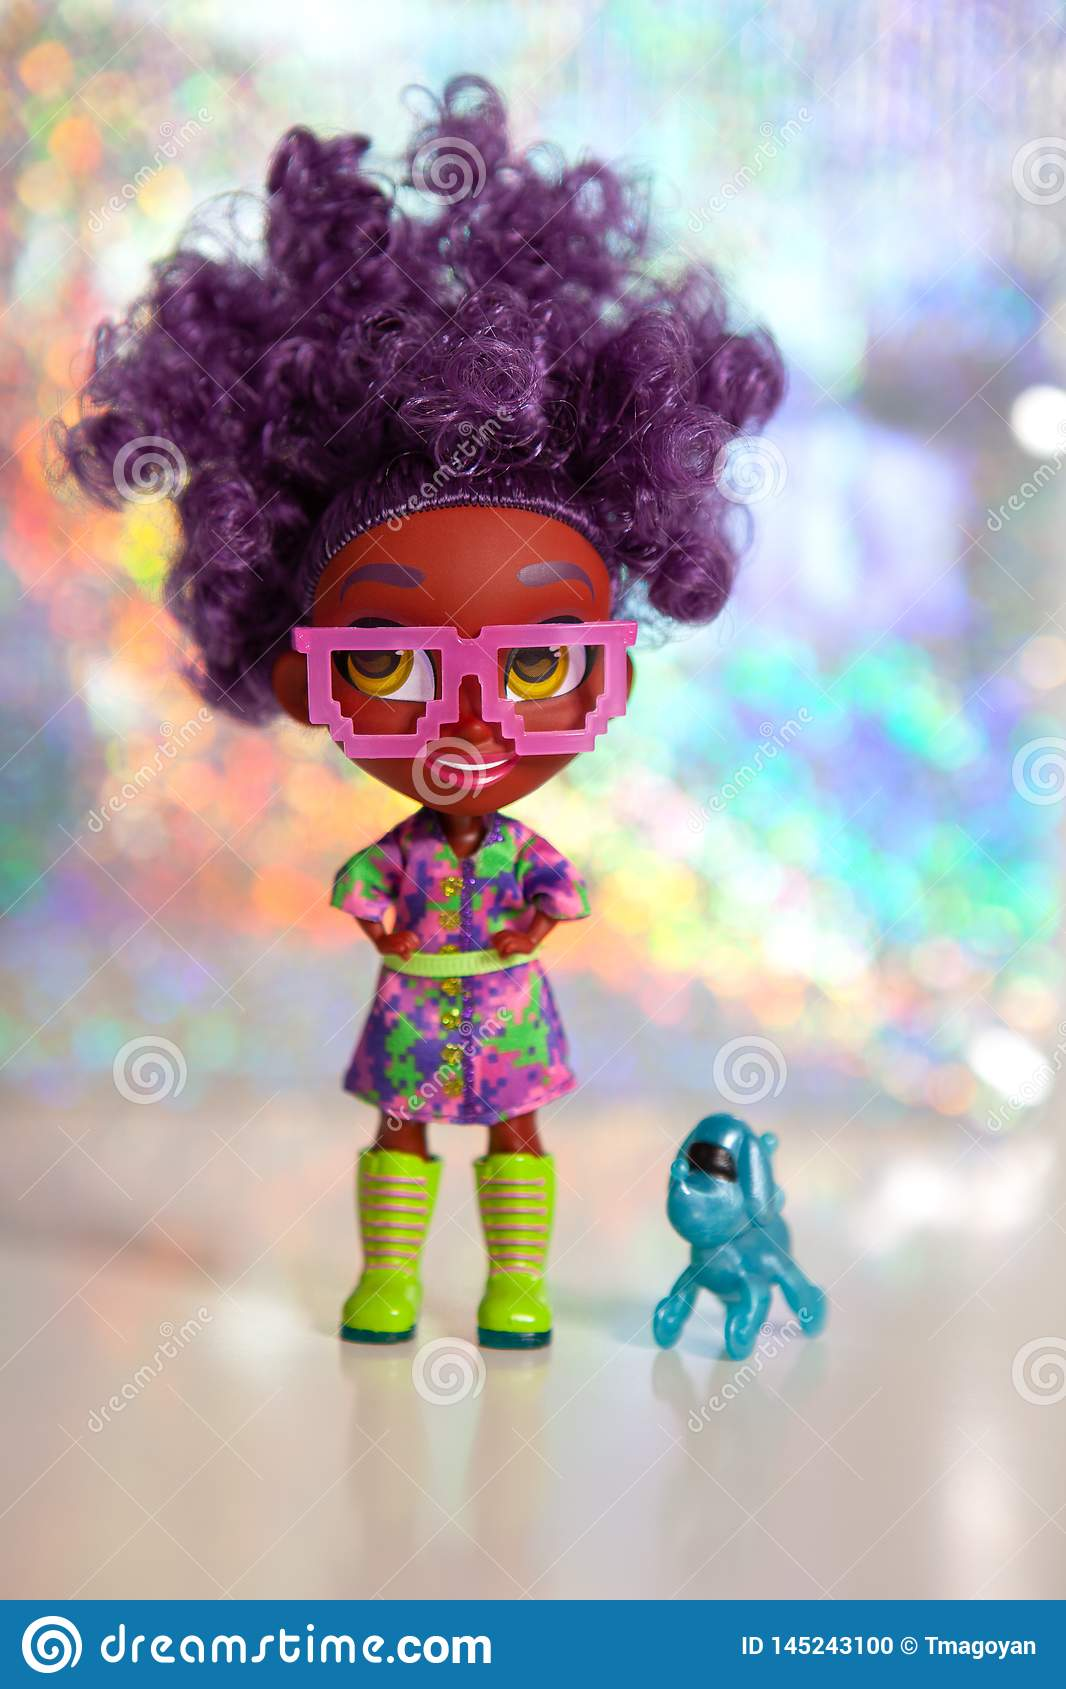 Moscow, Russia - April 18, 2019: Doll surprise Hairdorables. Series 1. Dark-skinned doll with glasses with thick curly hair.